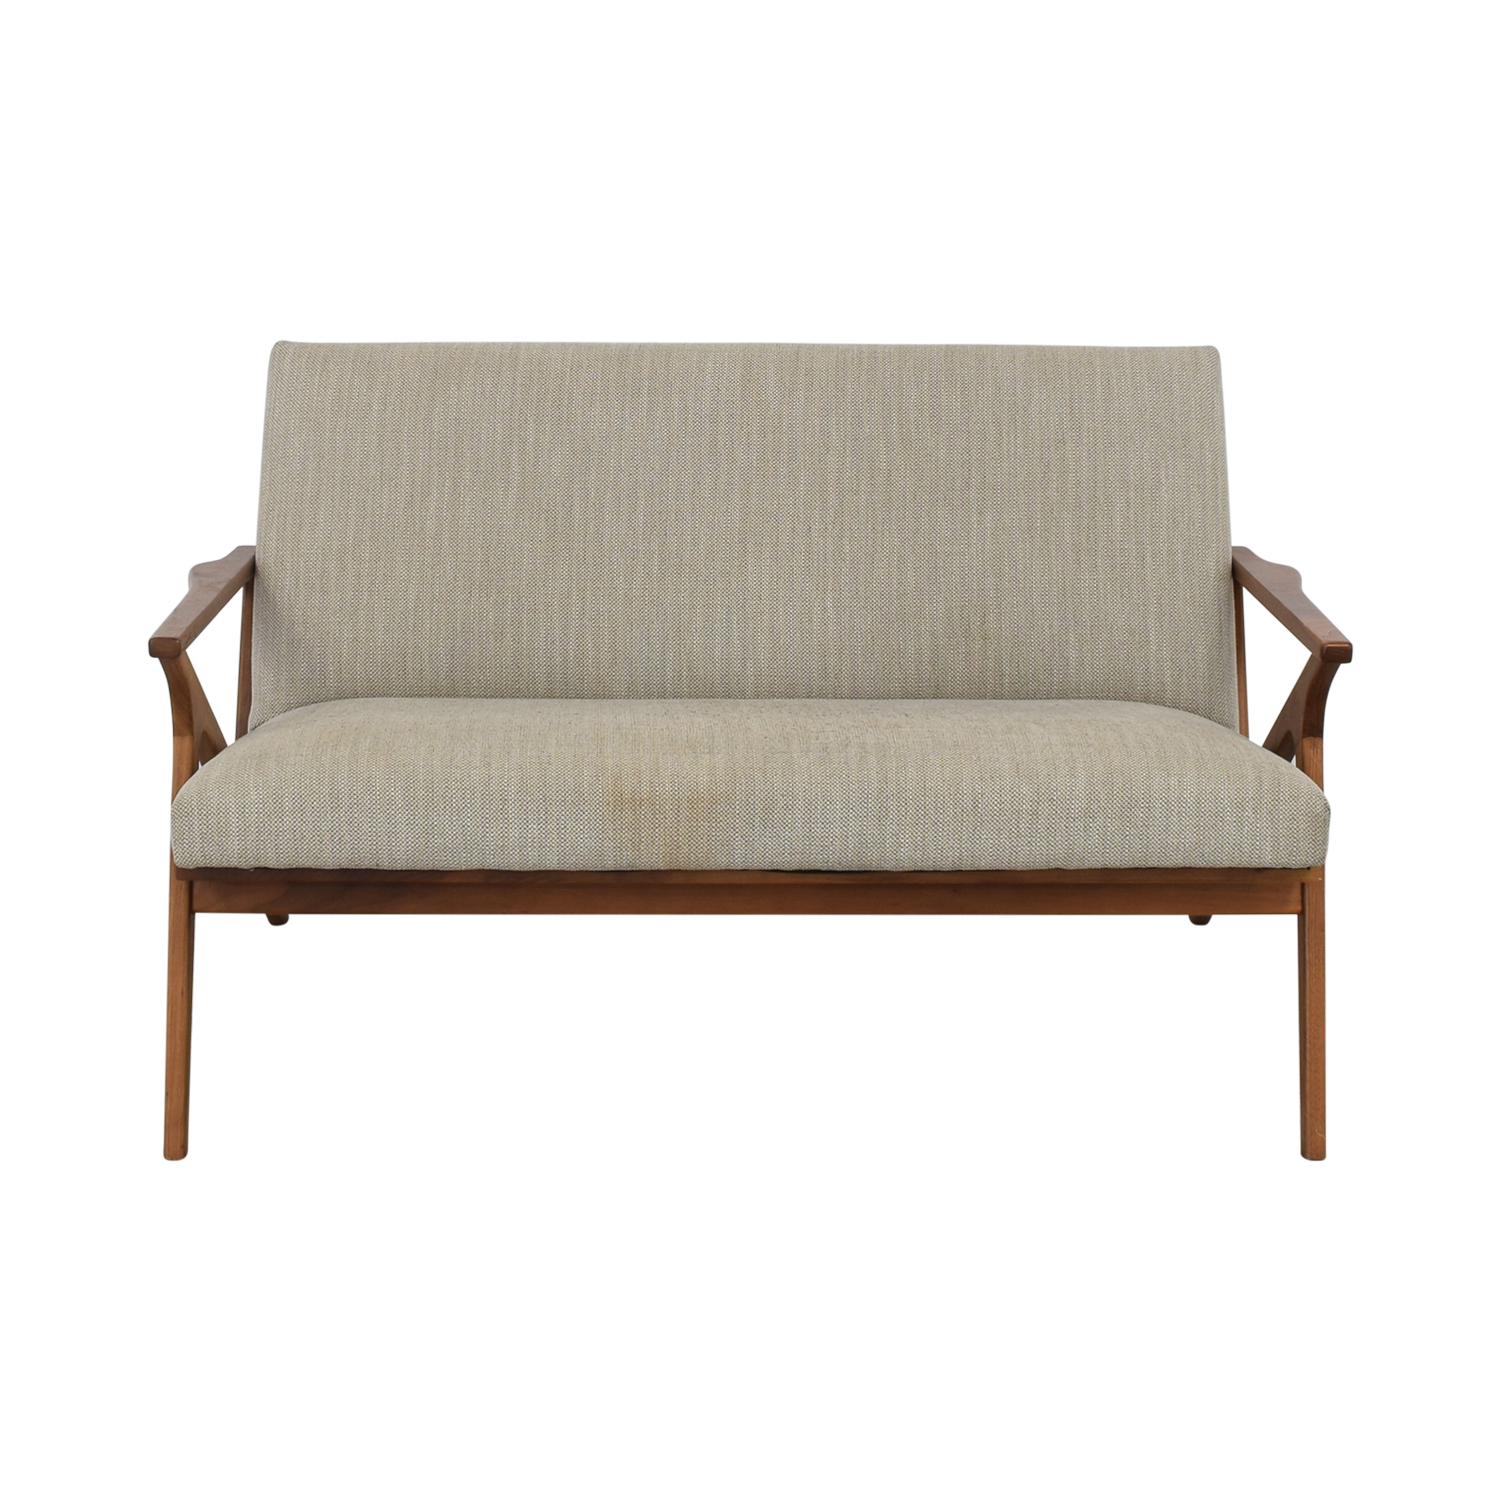 Crate & Barrel Cavett Frame Wood Love Seat Crate & Barrel